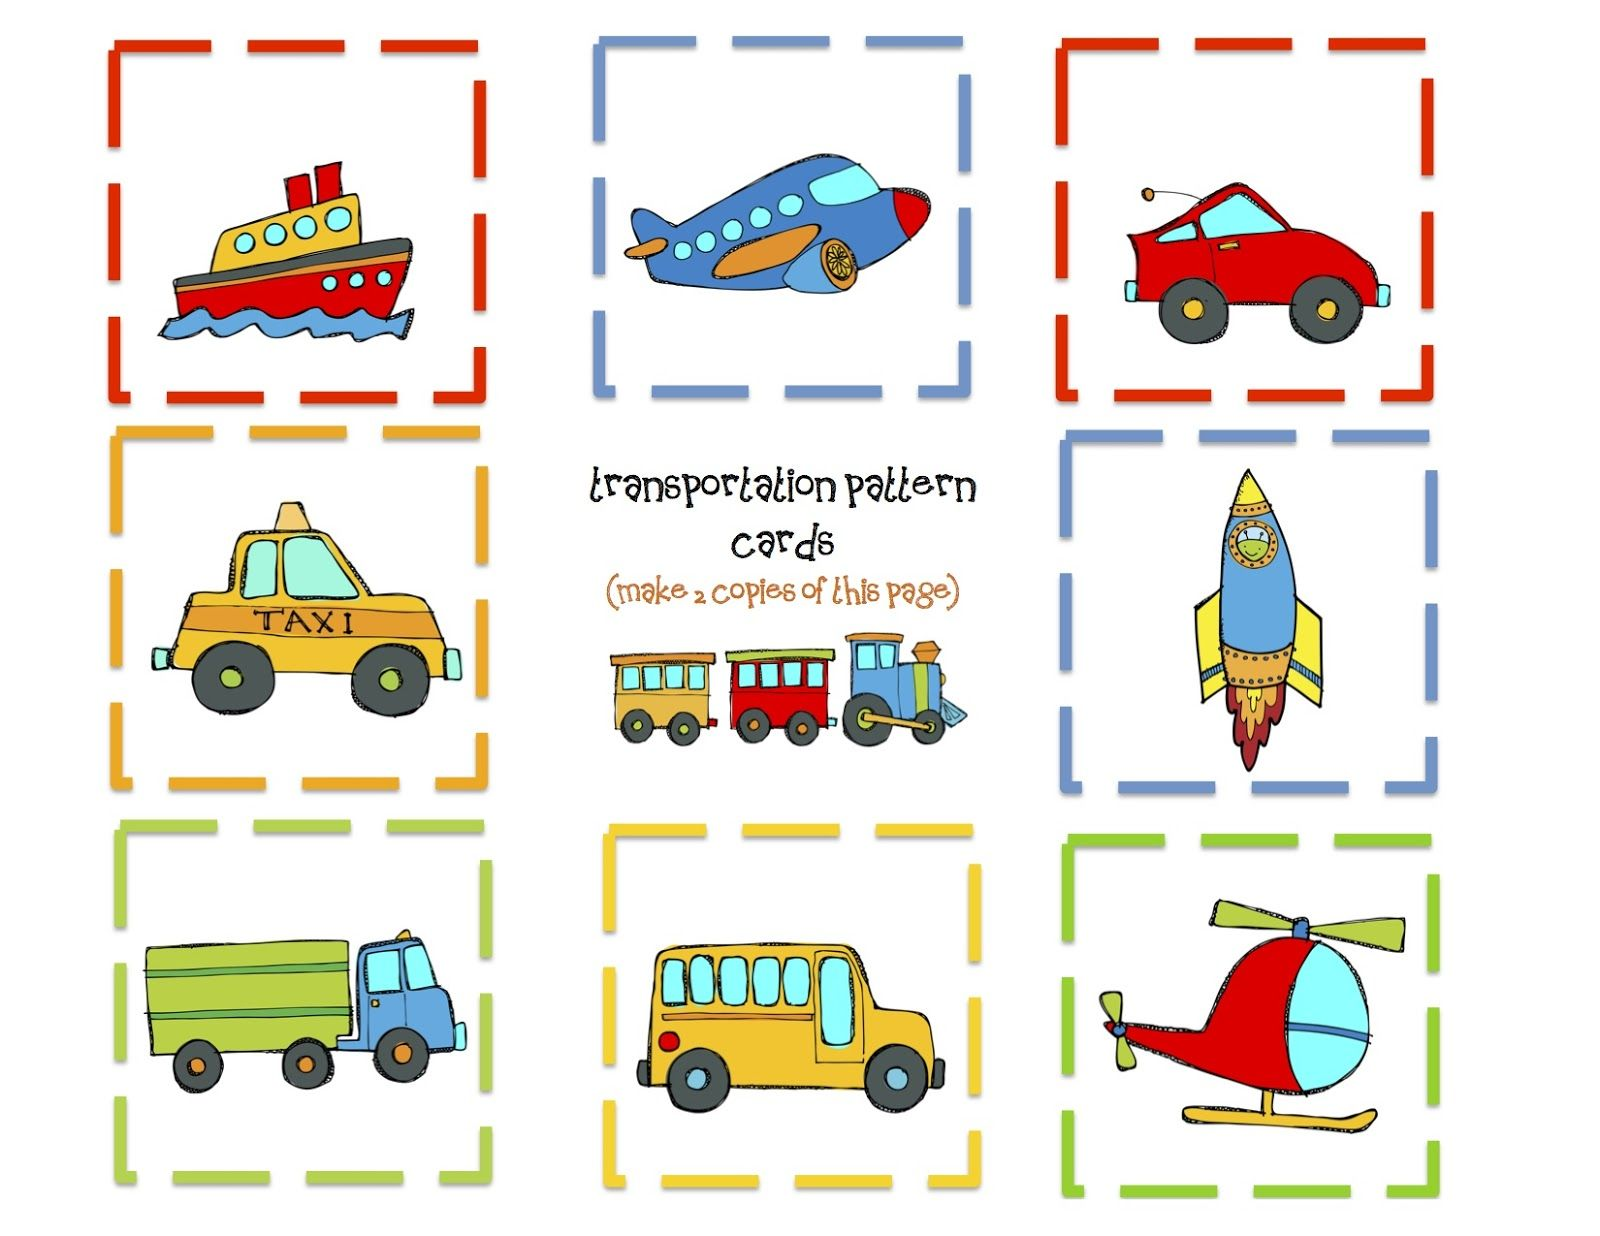 Transportation+9+Pattern+cards.jpg 1,600×1,236 Pixels